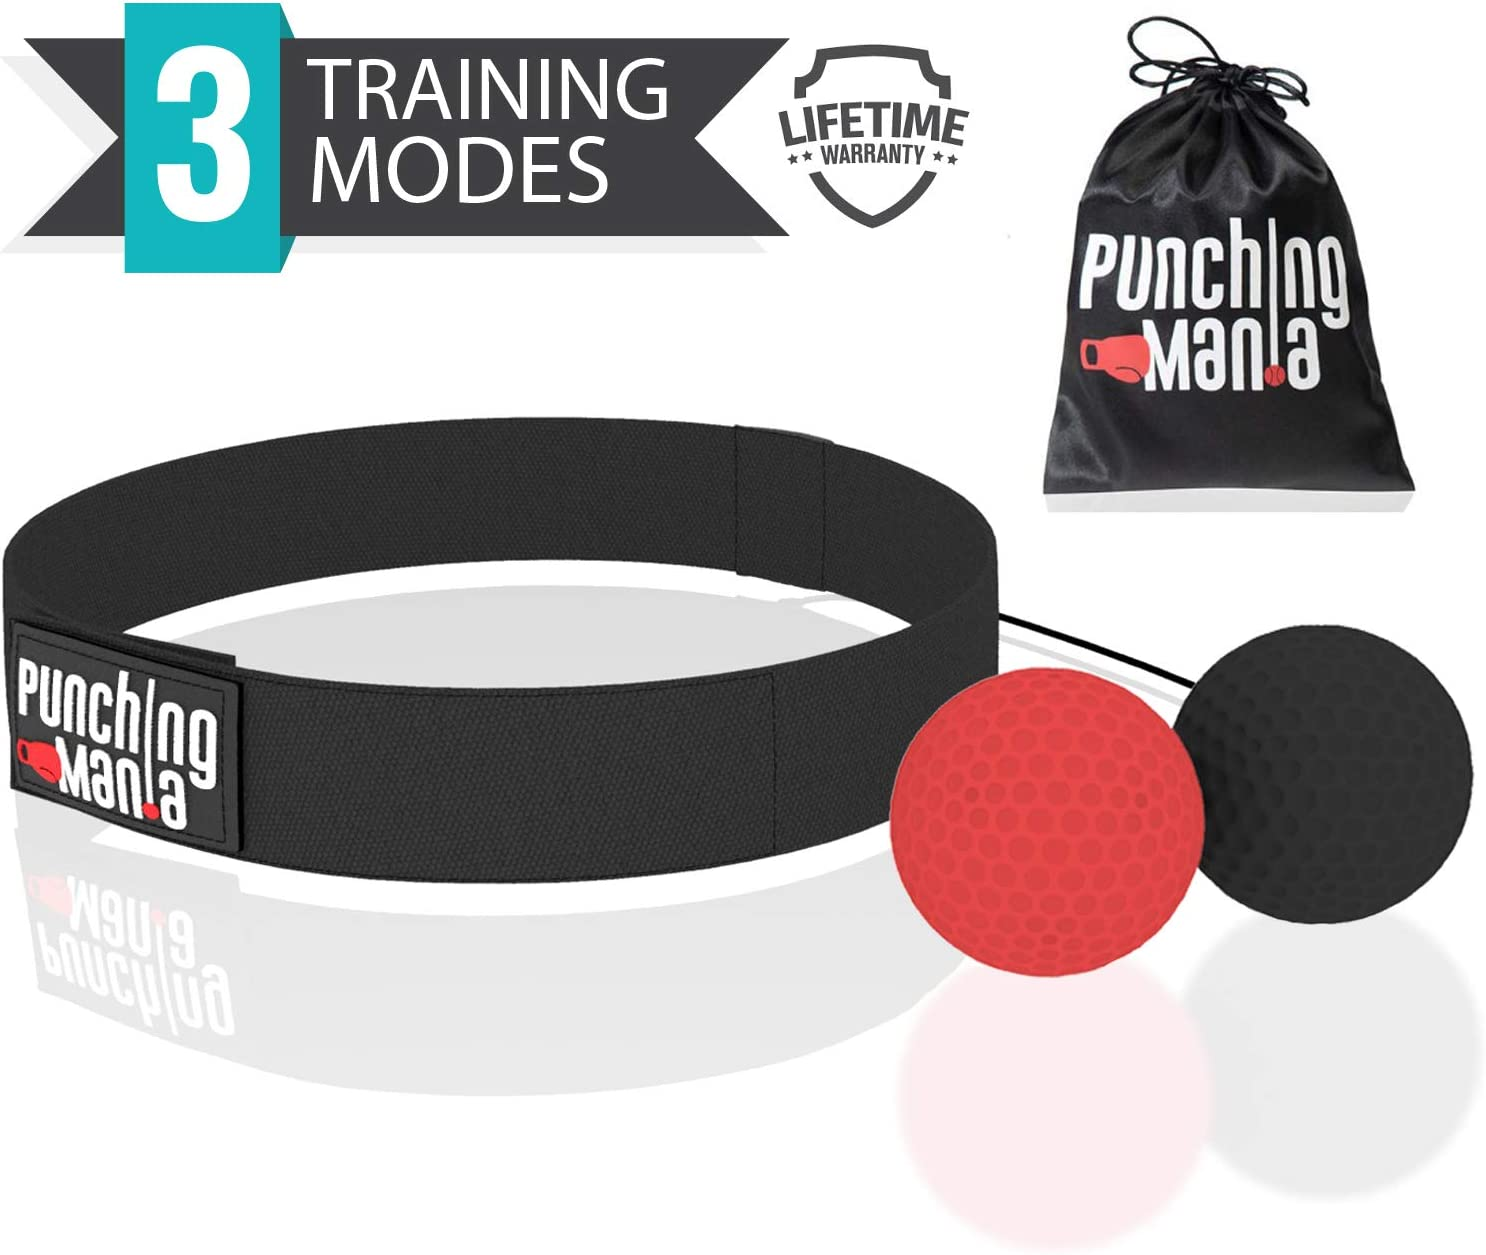 Punching Mania Boxing Manufacturer direct delivery Reflex Ball for Kids and P – Adults 2 Nippon regular agency